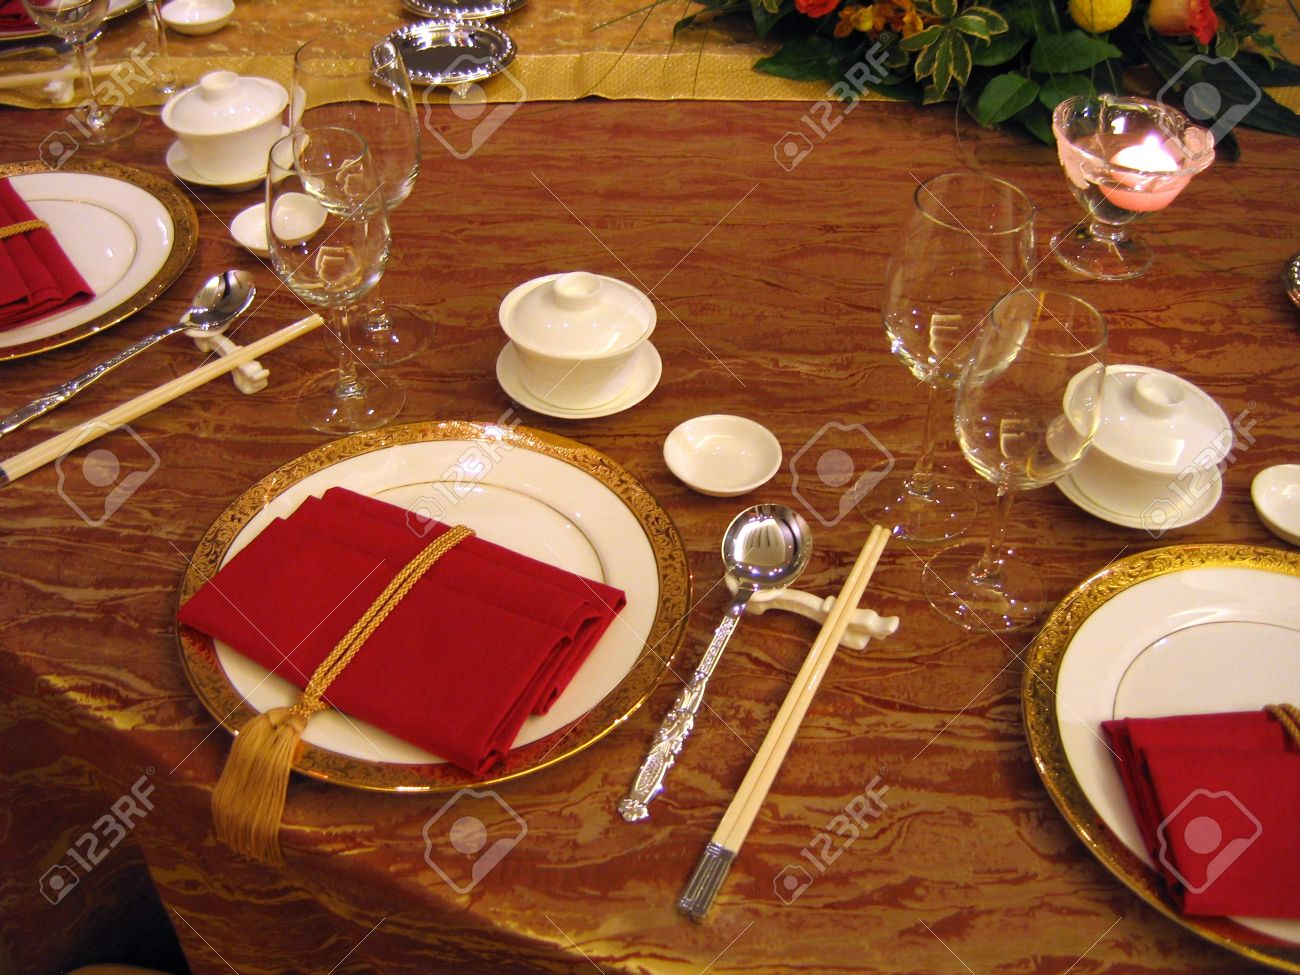 Banquet Table Setting Part - 49: Chinese Wedding Banquet Table Setting Stock Photo - 588257